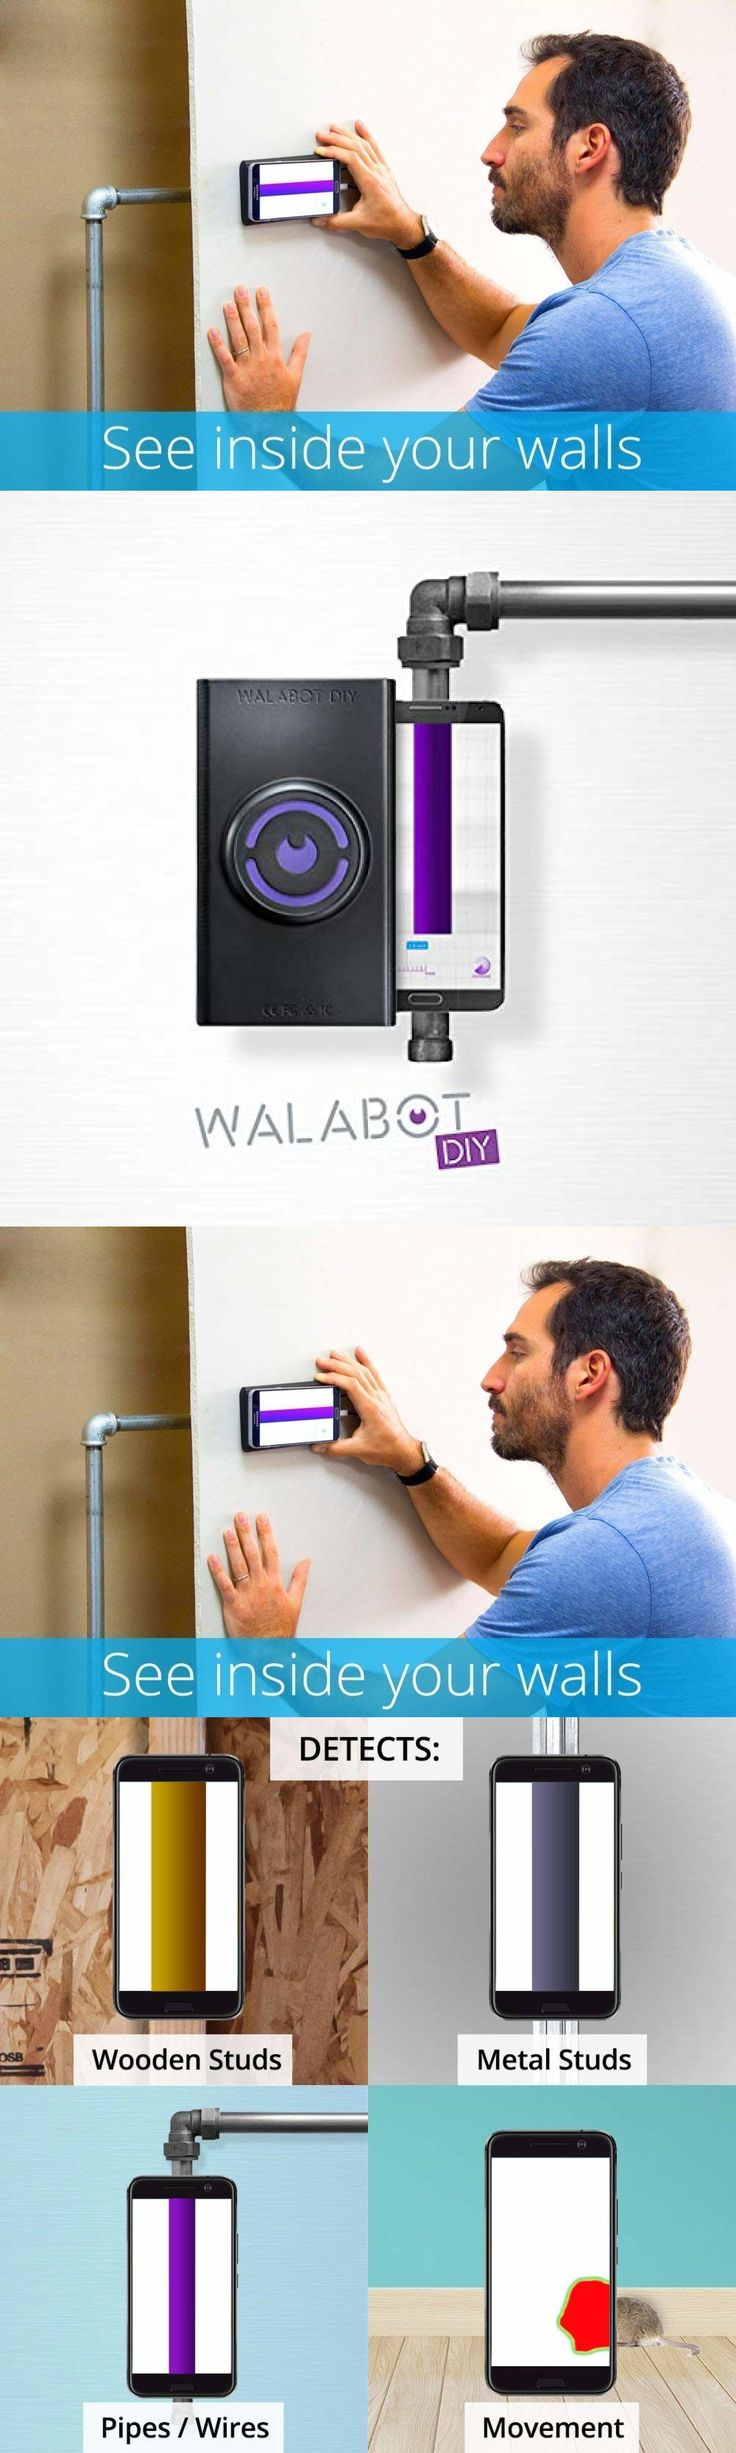 Other cell phones and accs 42428 walabot in wall imager